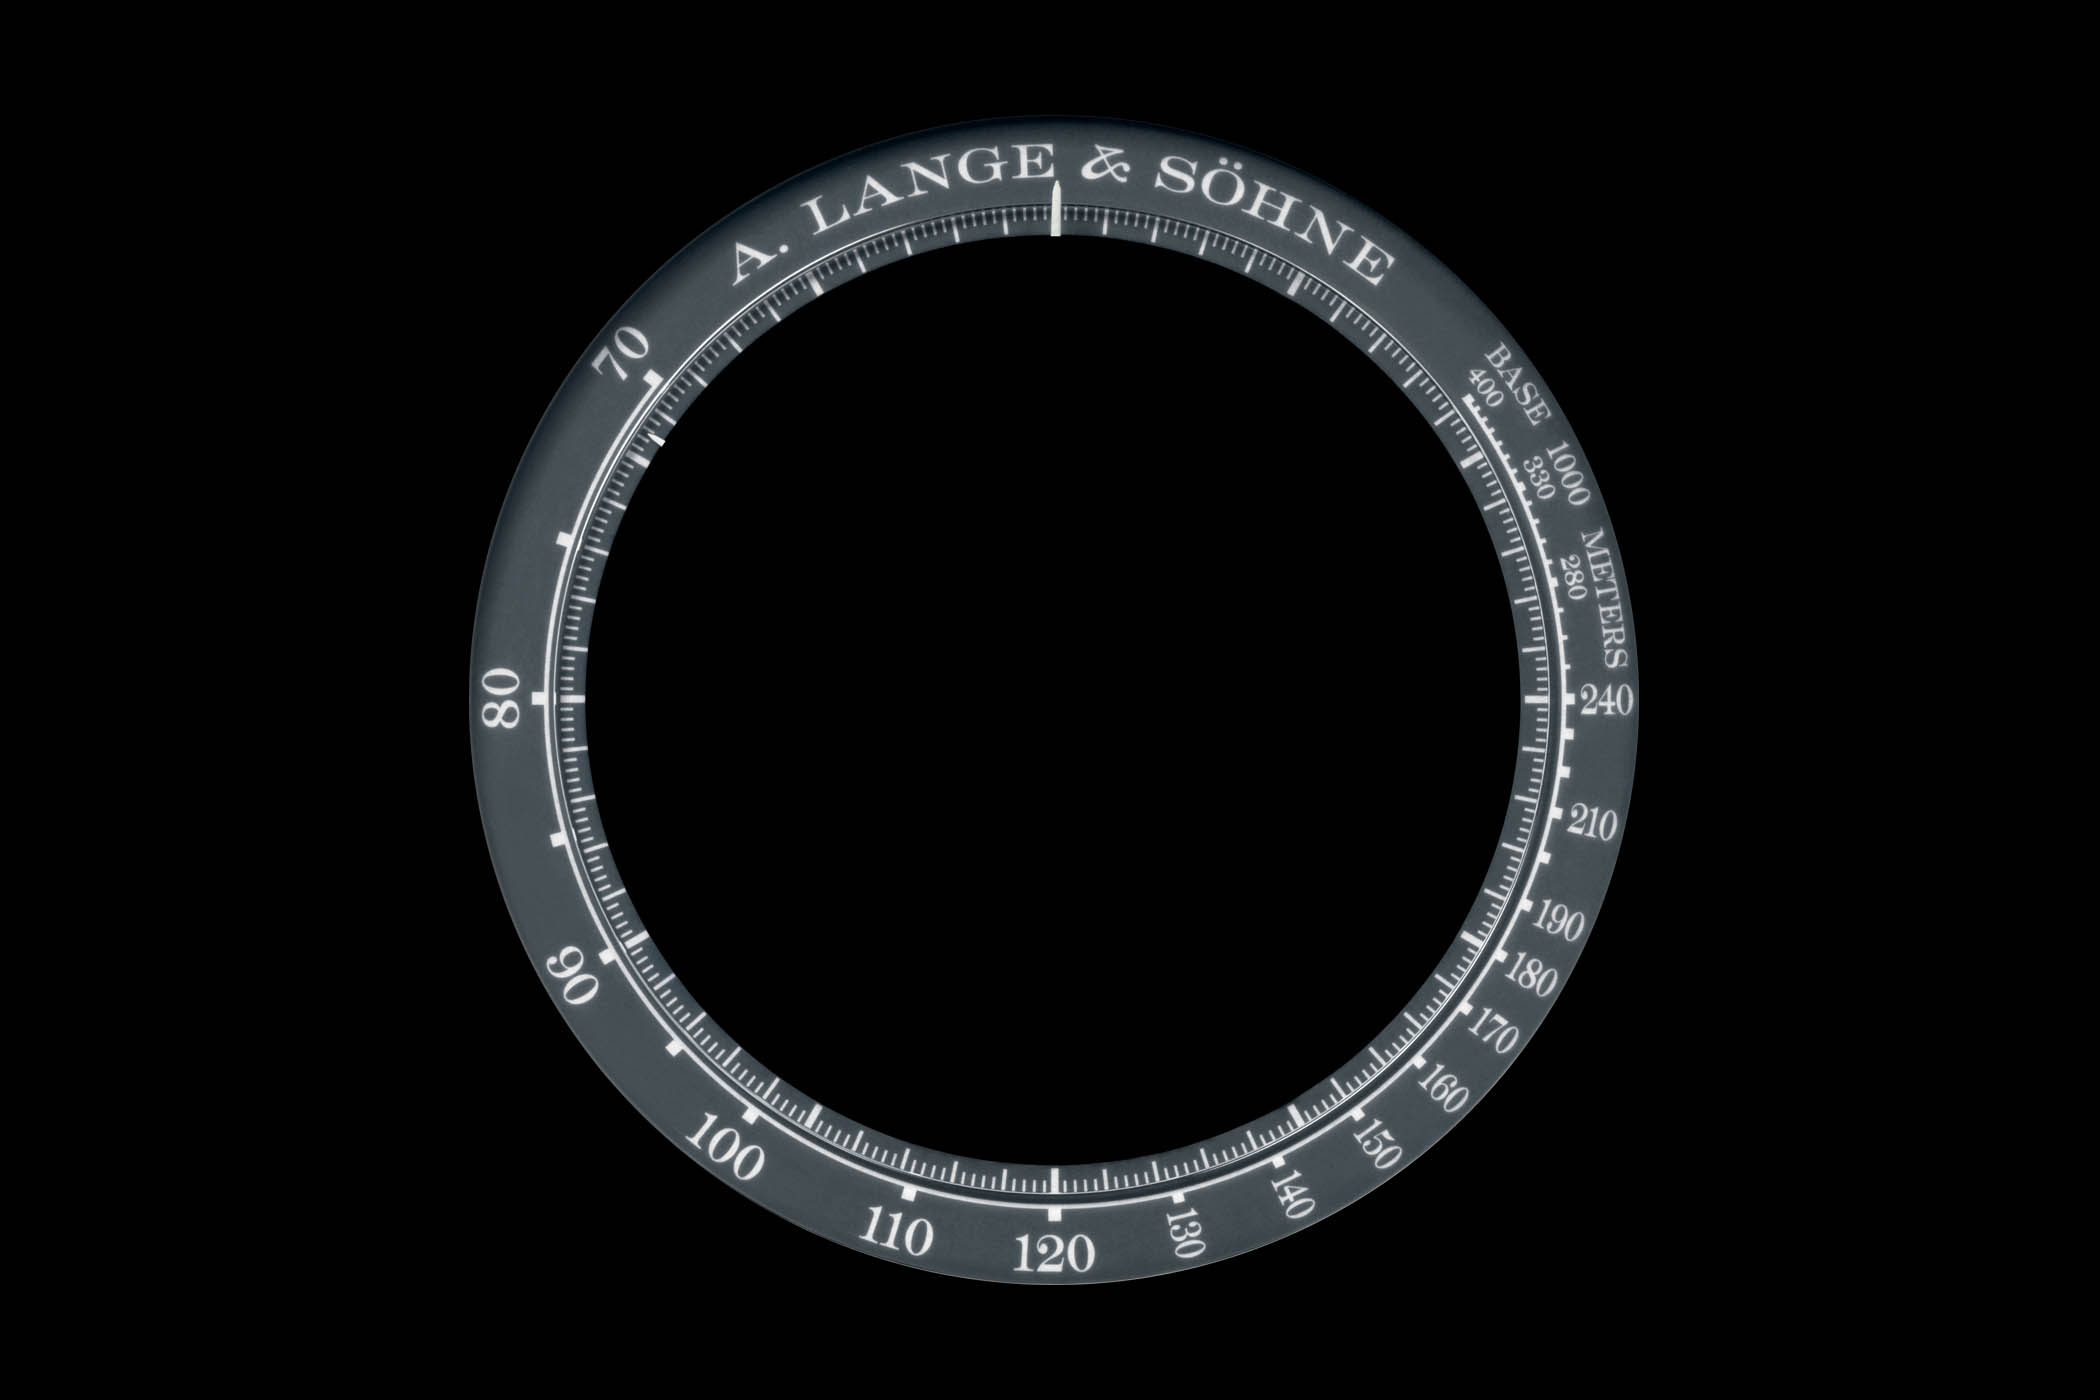 Understanding-the-scales-on-bezels-tachymeter-3.jpg